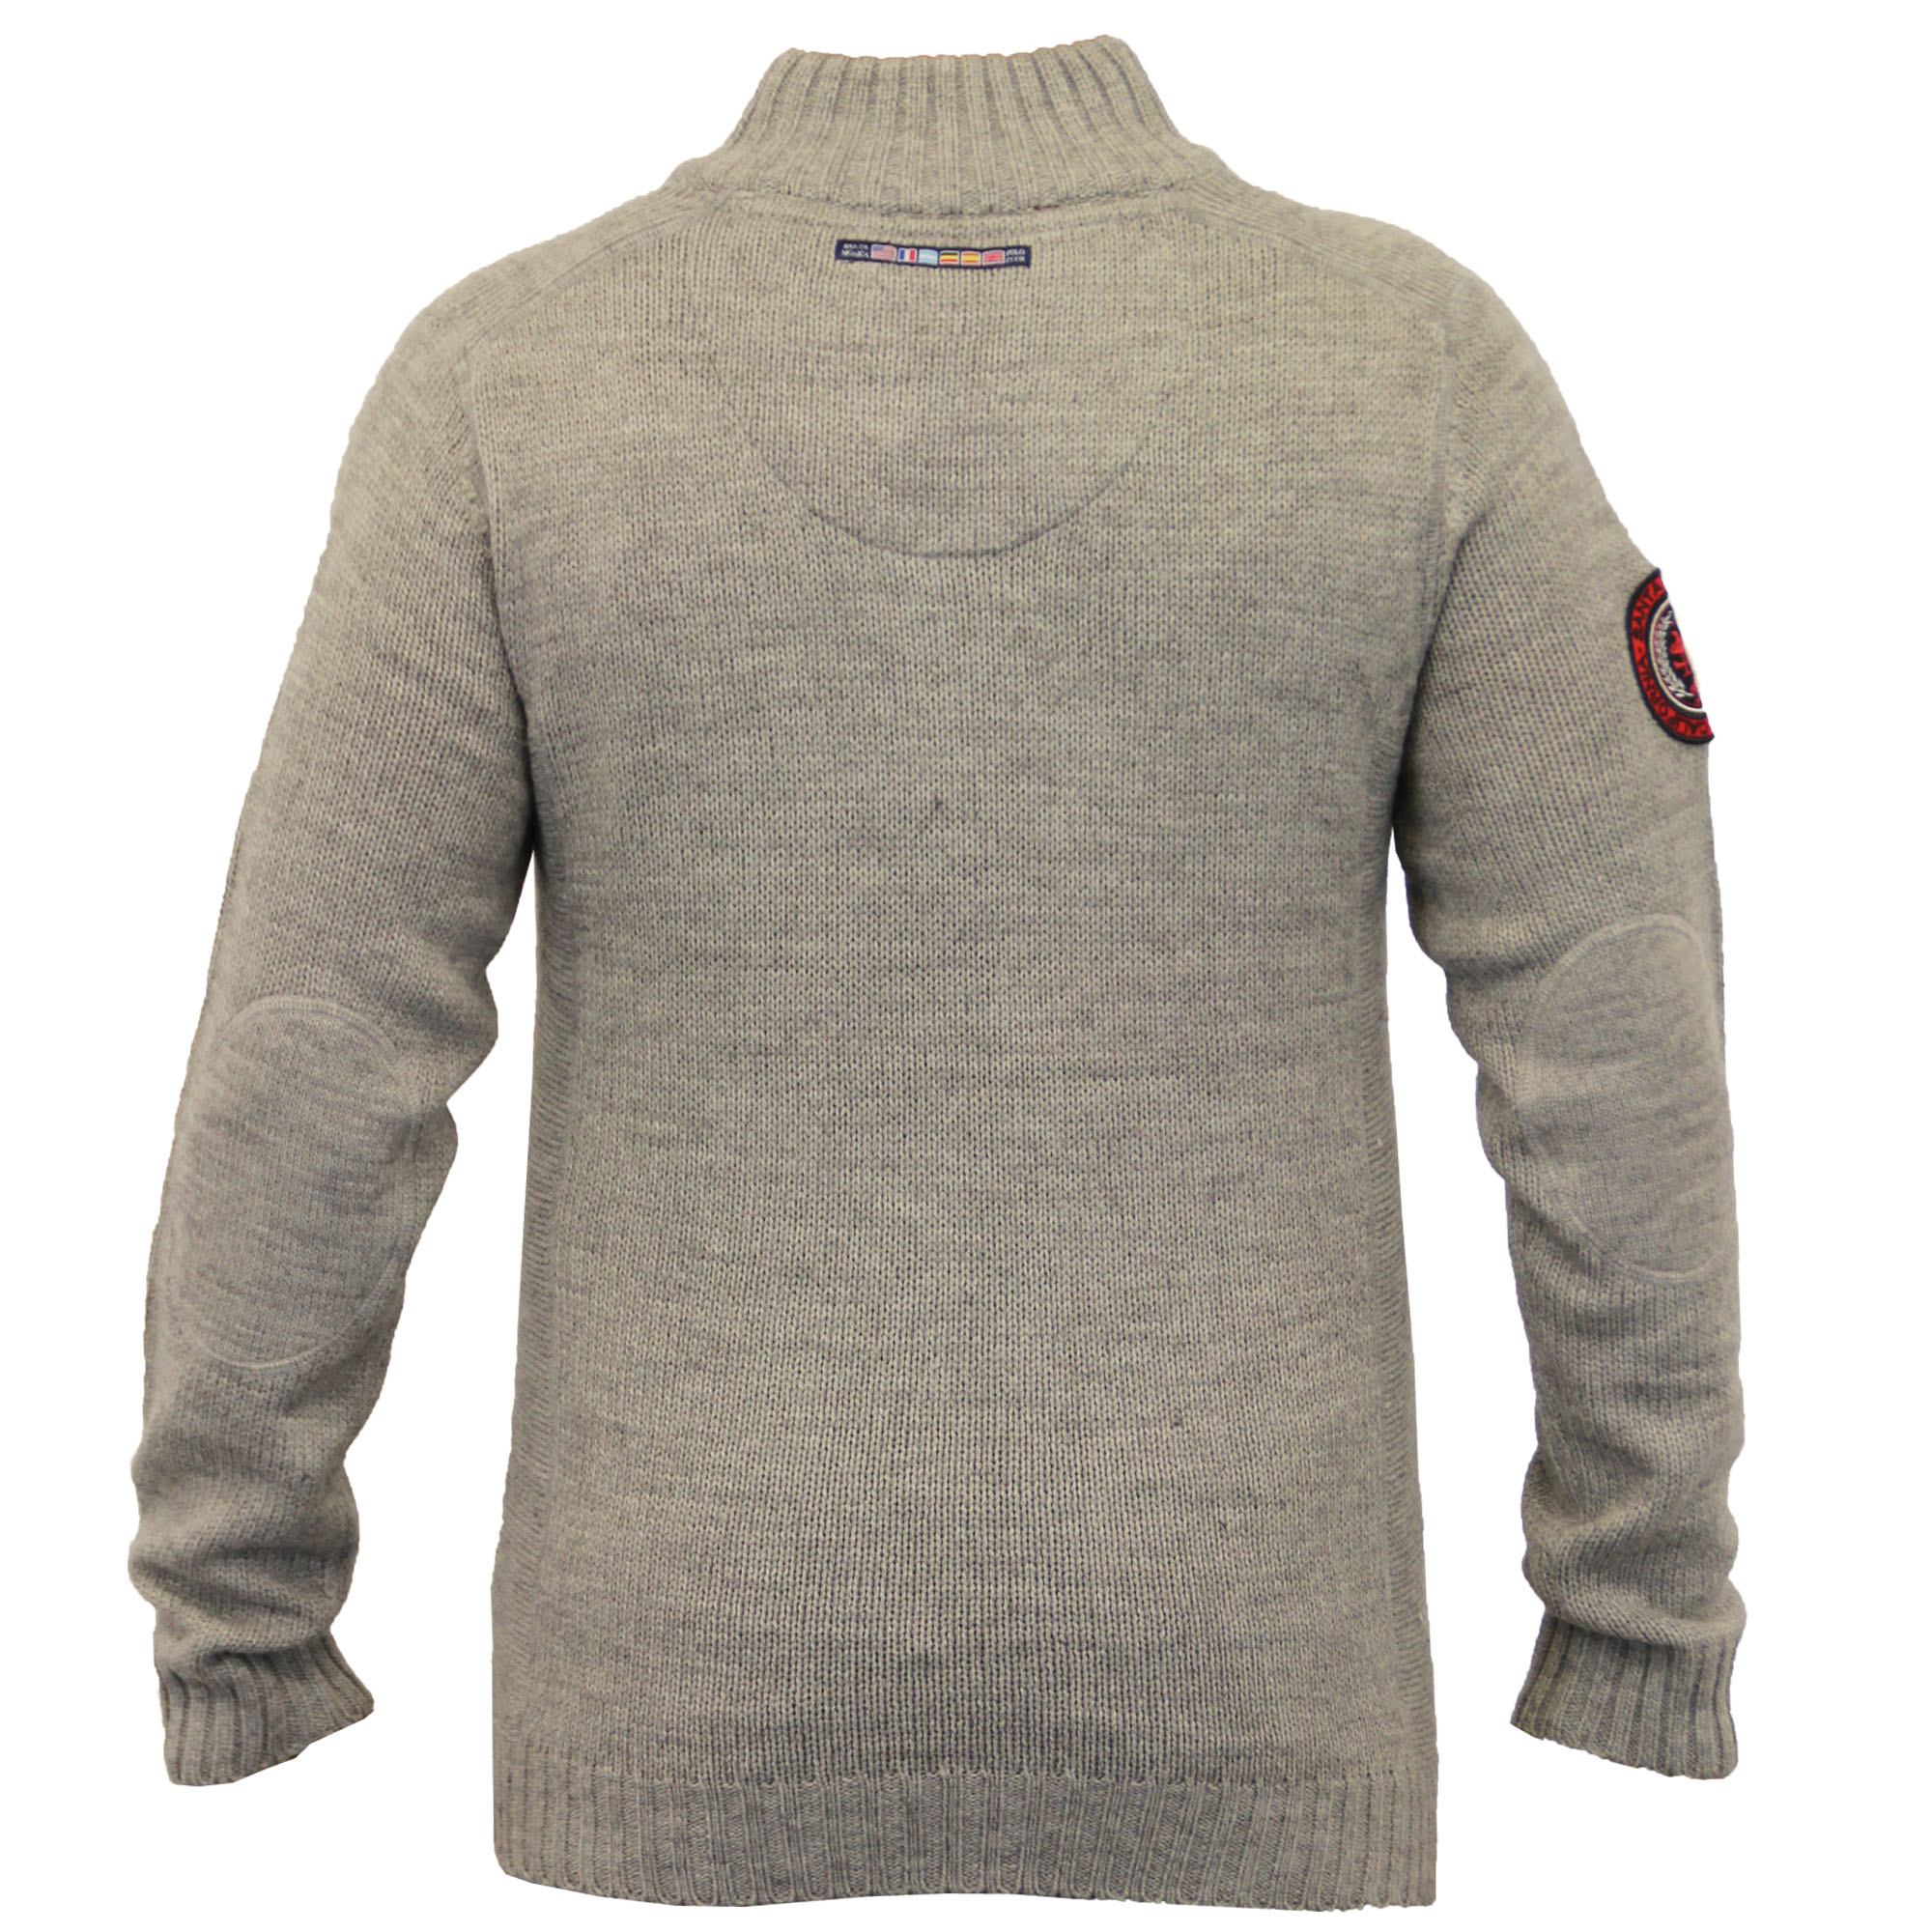 Mens-Wool-Mix-Jumpers-Santa-Monica-Cable-Knitted-Jacquard-Sweater-Pullover-New thumbnail 8